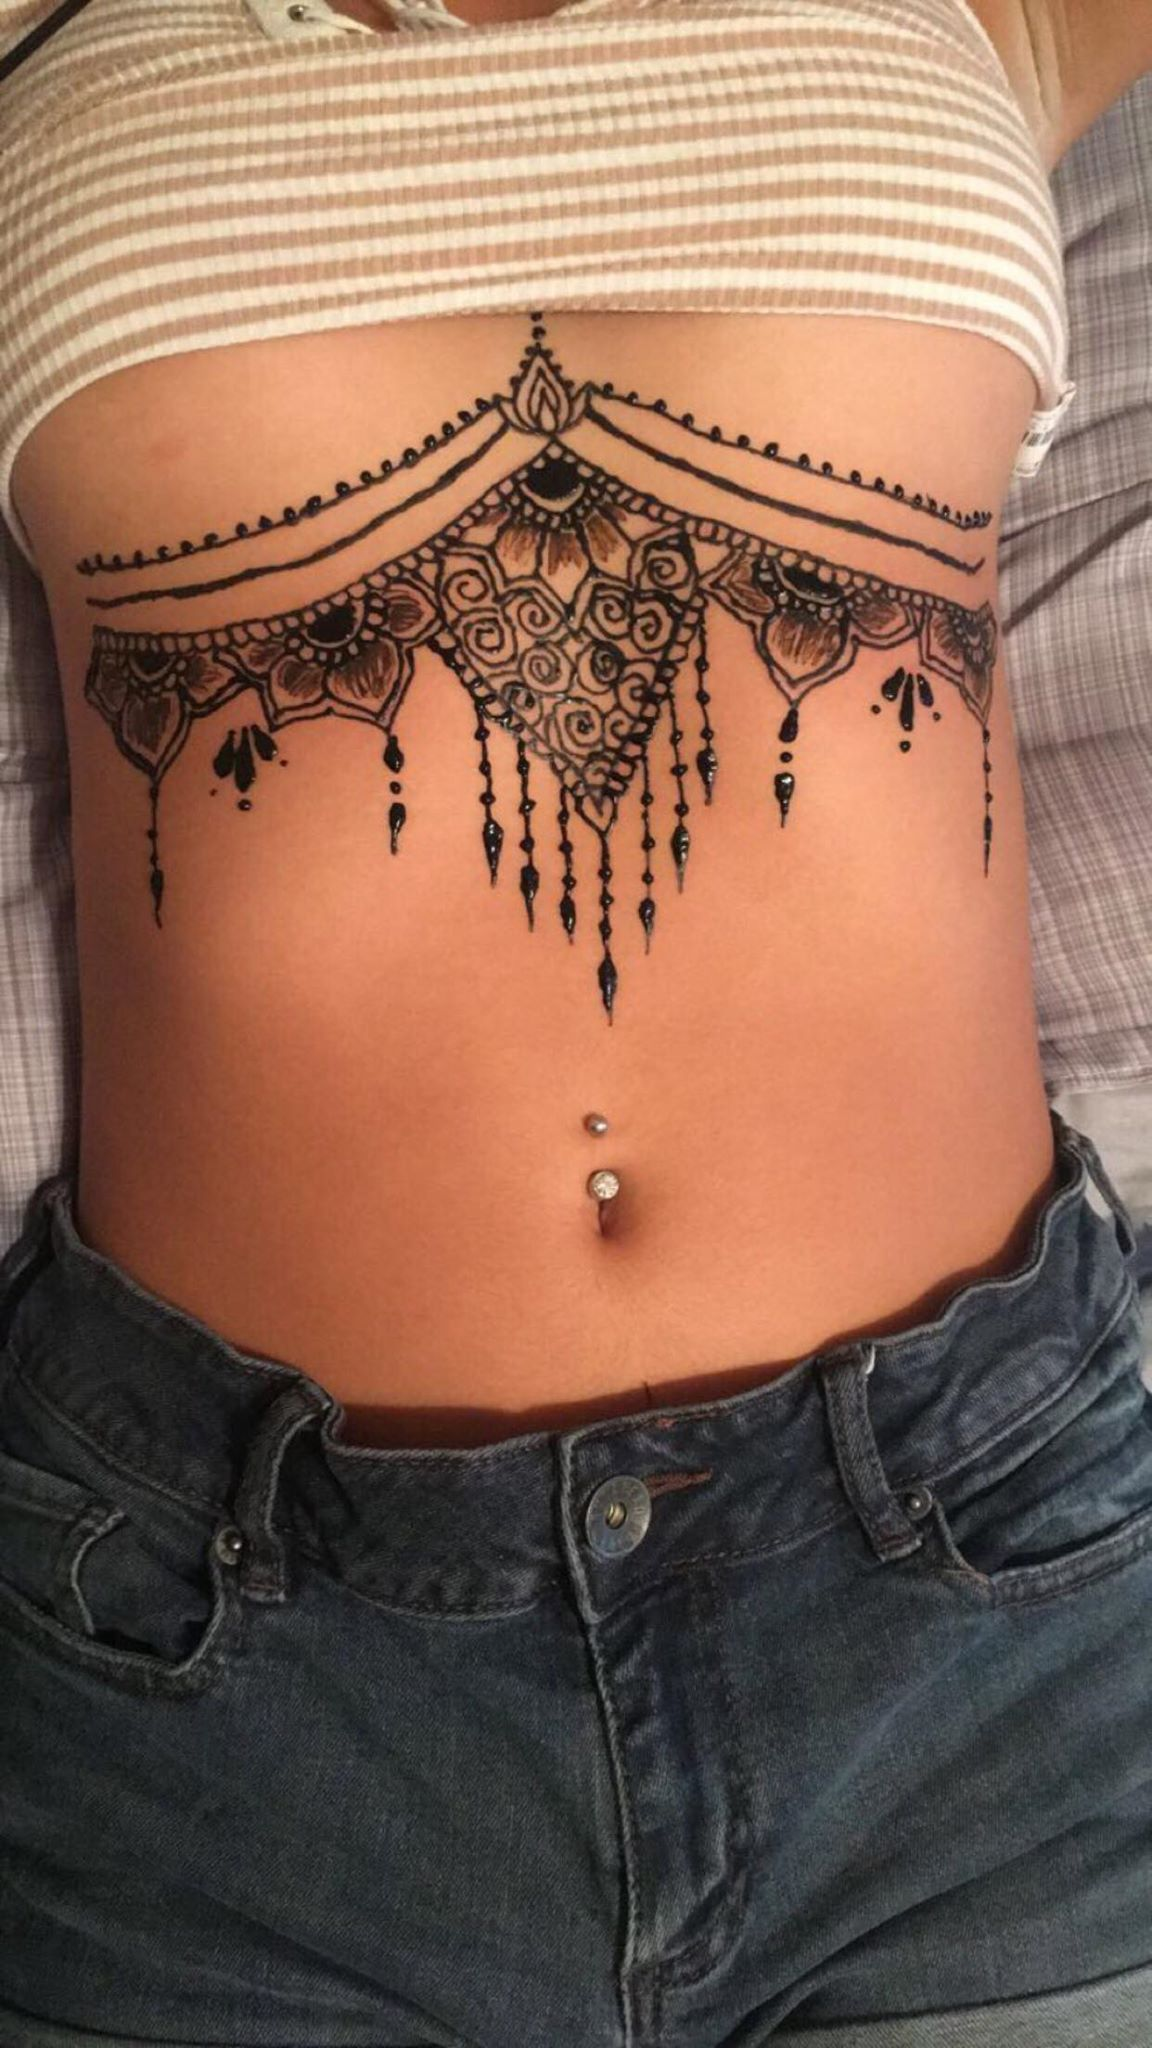 Henna Tattoo Shops: Henna Tattoo For Your Next Event